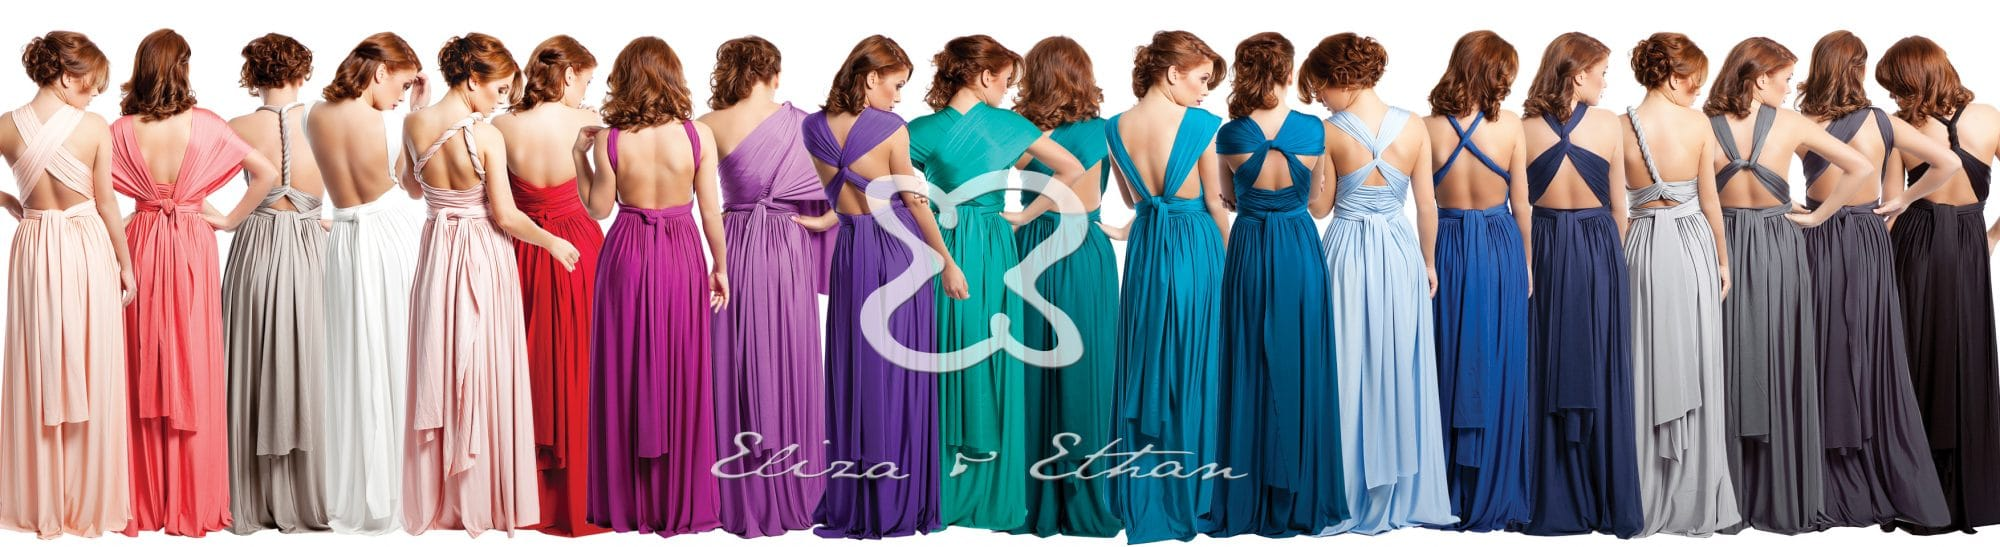 The perfect bridesmaids alila eliza and ethan multiwrap dress ombrellifo Images